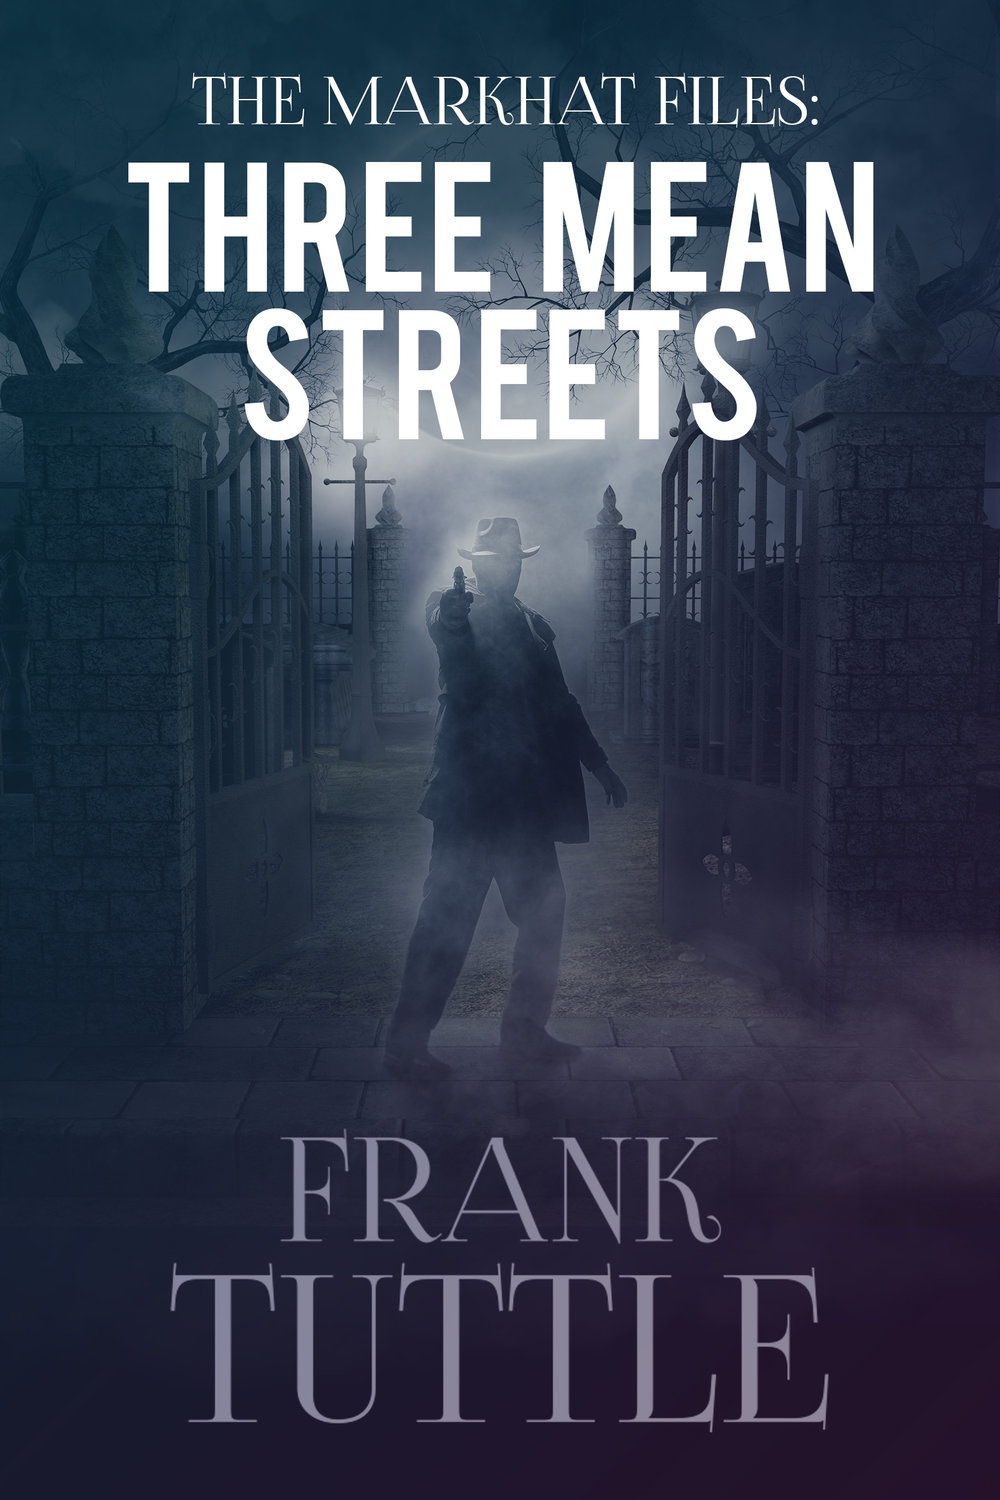 Three Mean Streets